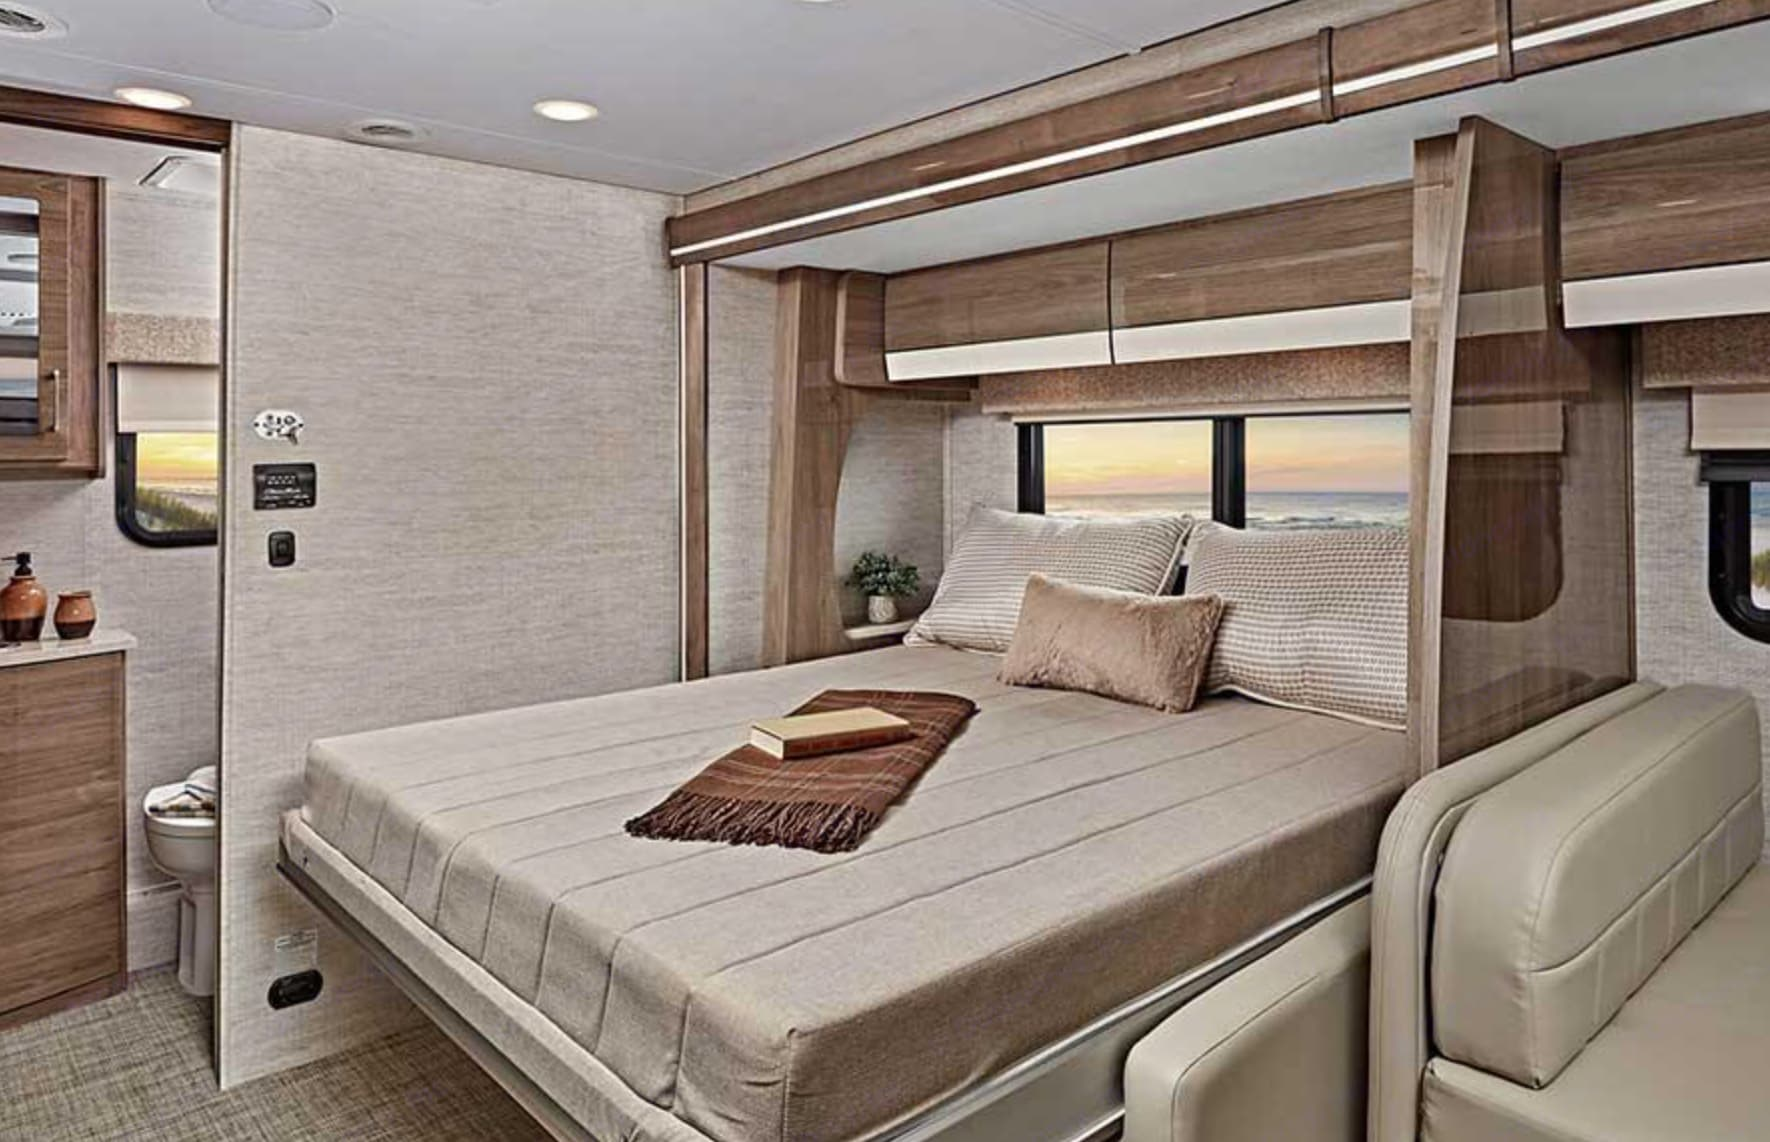 Murphy bed, Oh La La! Manufacturers photo, ours coming soon!  They look identical!. Entegra Coach Qwest 2021